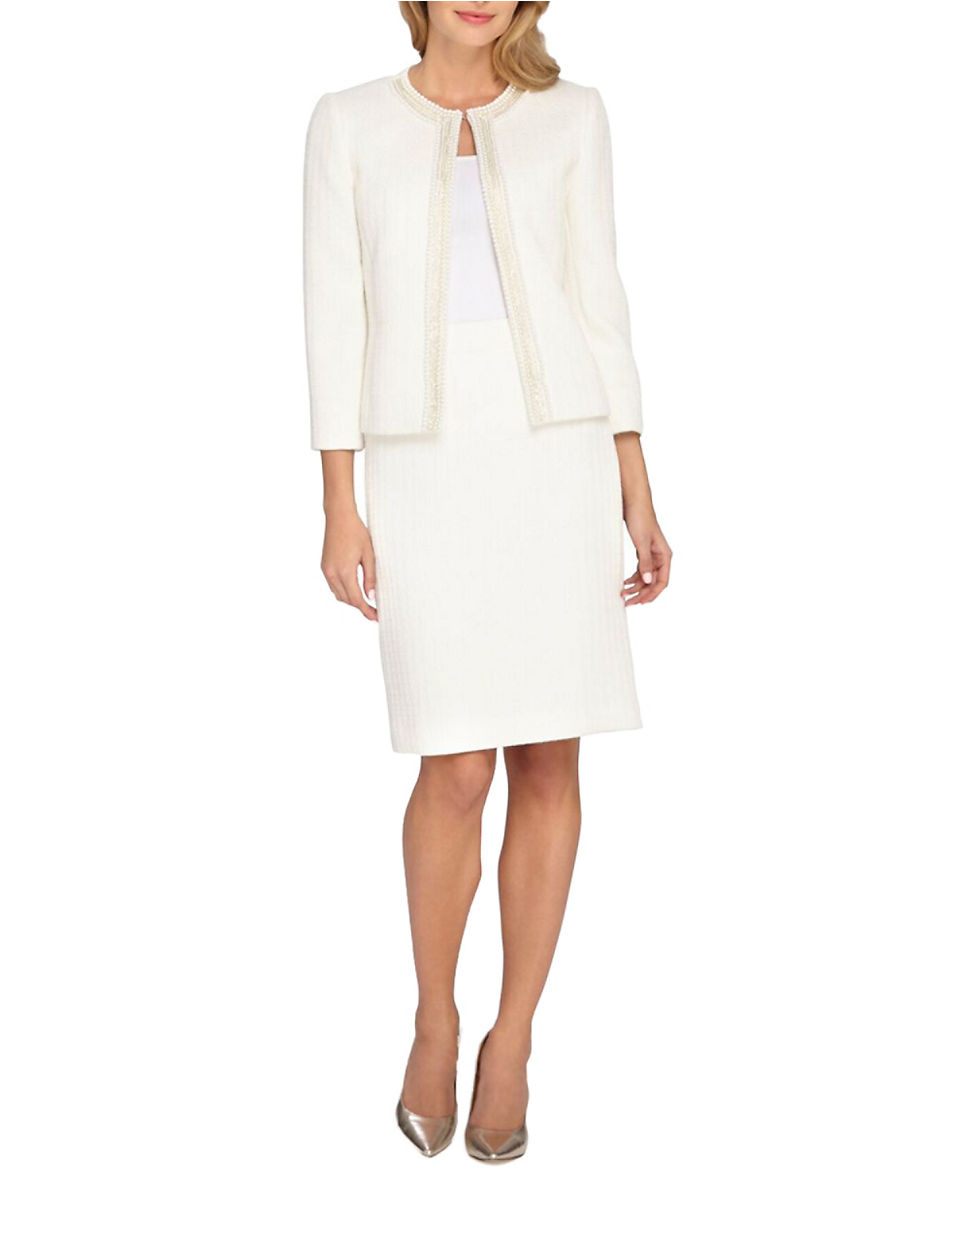 Lyst - Tahari 2-piece Embellished Jacket And Skirt Set in ...